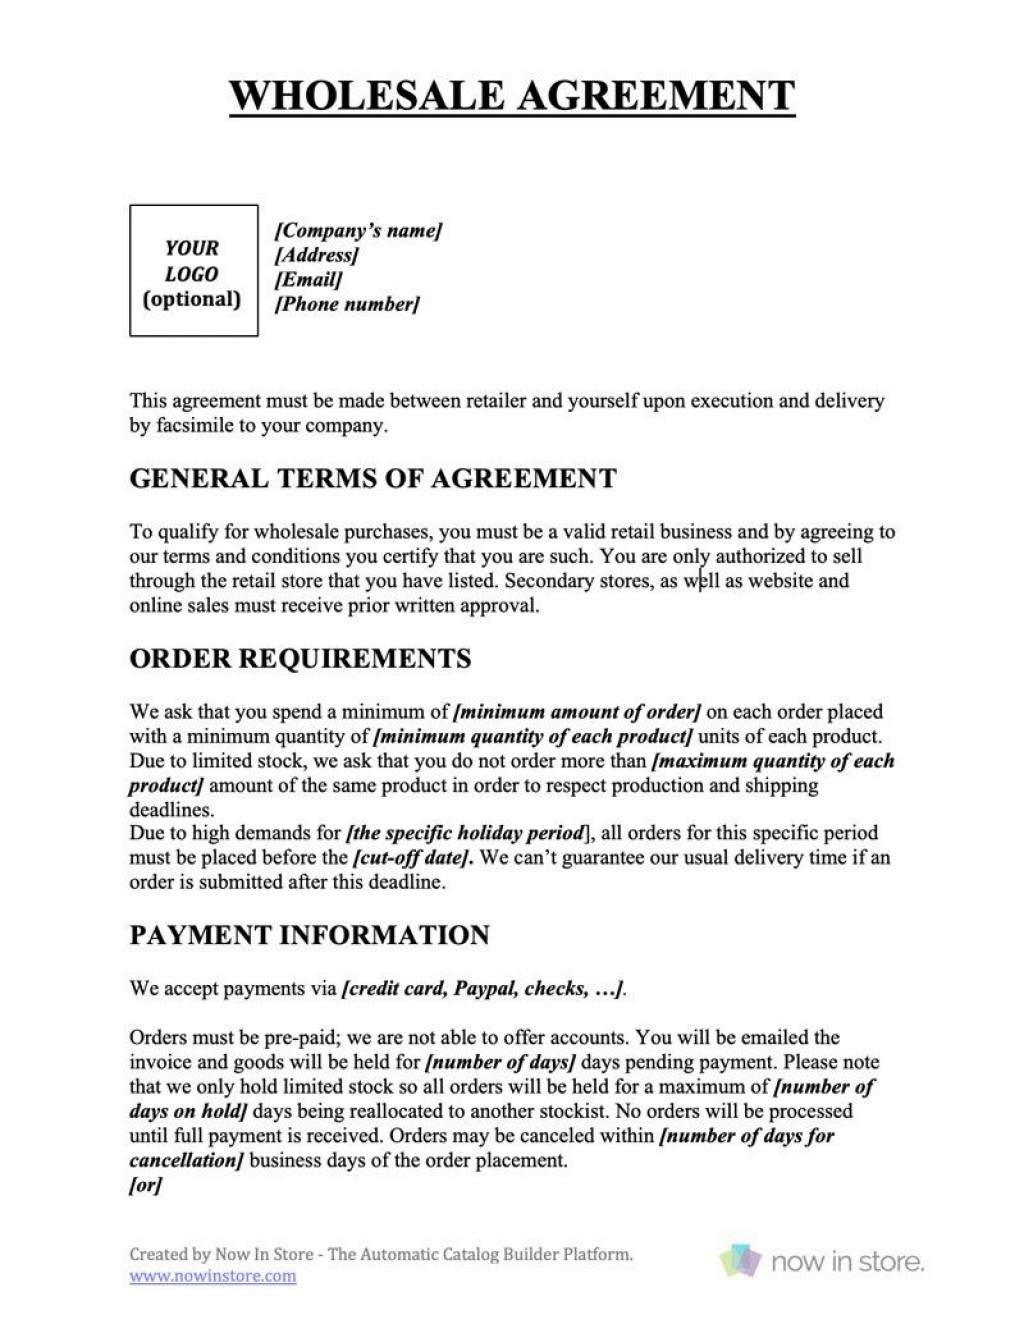 009 Marvelou Term Of Agreement Template Design  Service Contract Busines UkLarge